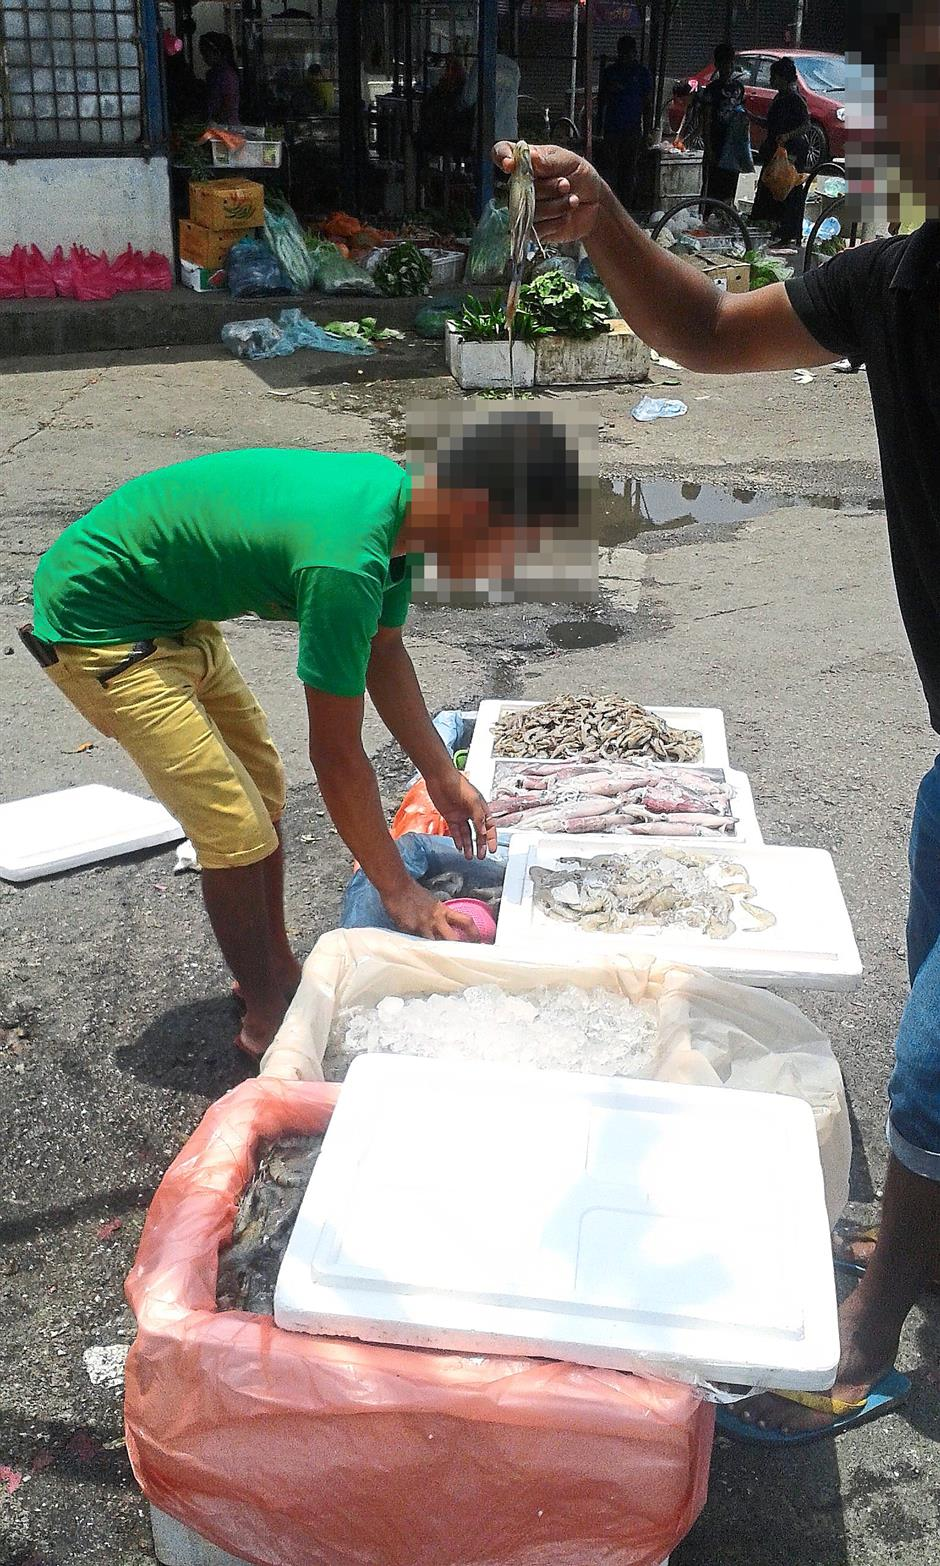 Less than market price: A foreign trader selling freshwater prawns at RM27 per kilogramme at the Selayang wholesale market.